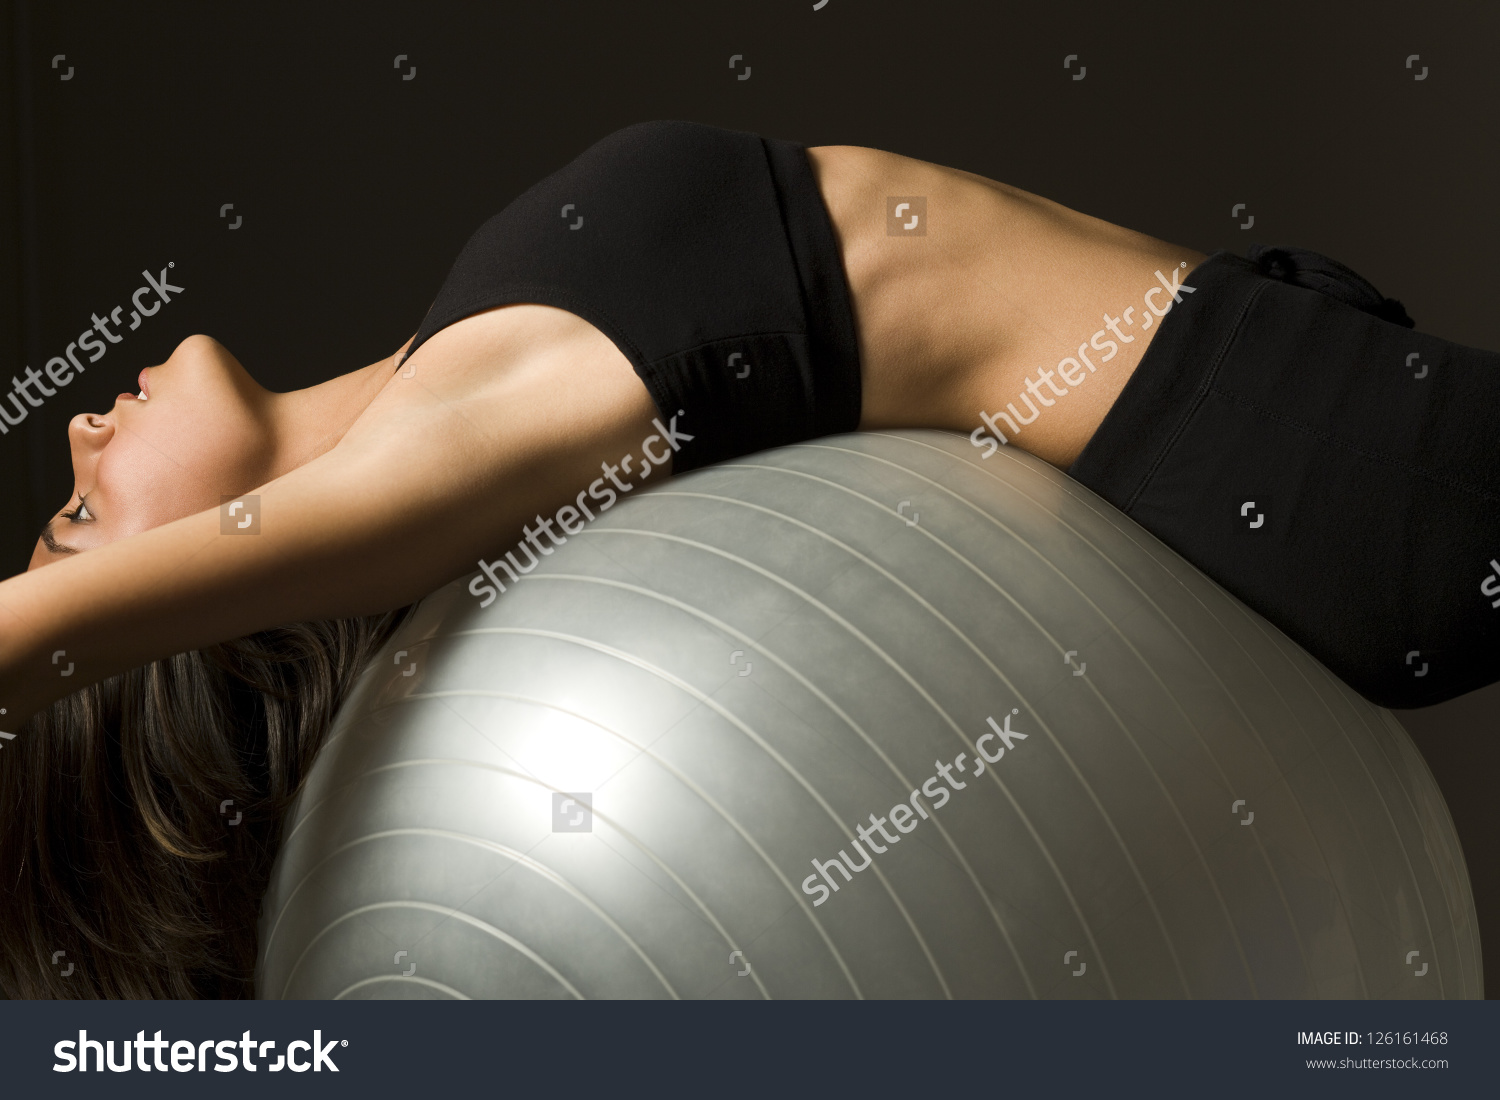 Girl on ball